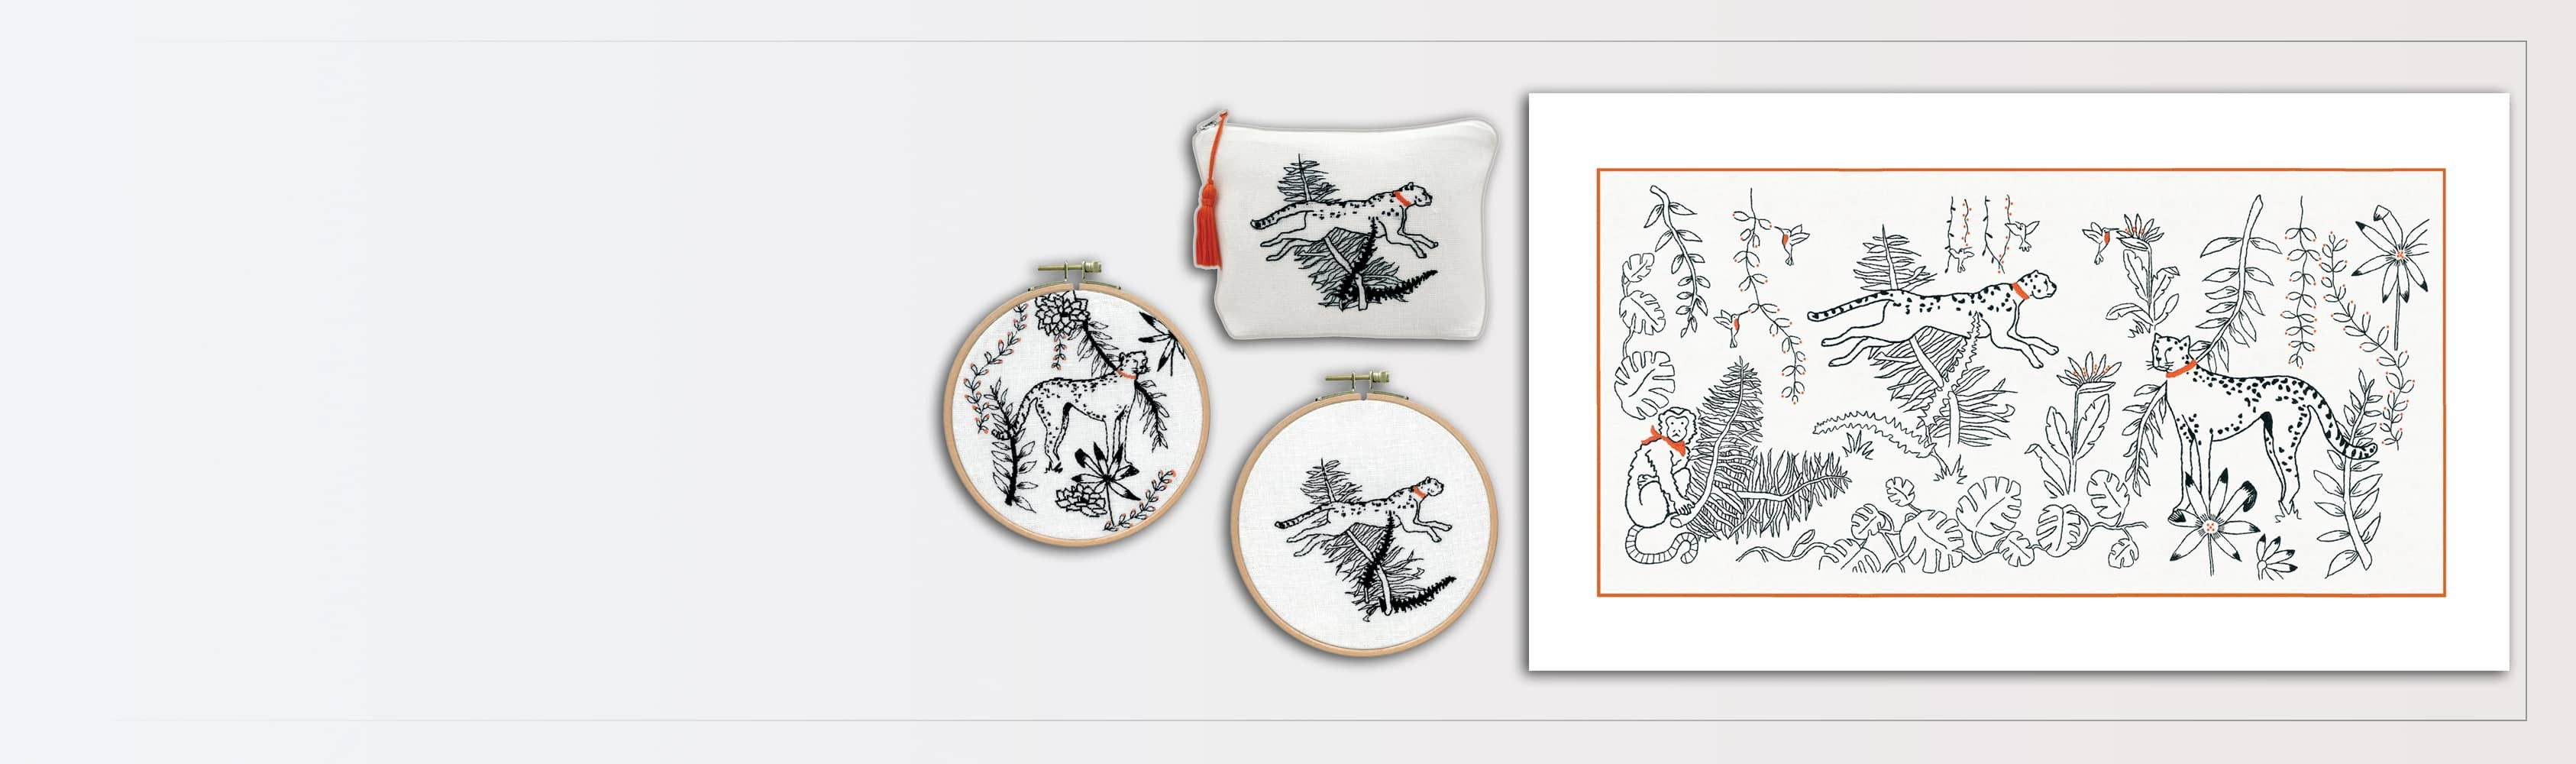 Animals of the jungle – traditional embroidery 2595. The cheetah's chase 3666. The cheetah 3663. Pochette Cheetah 9033 – Petit point. Le Bonheur des Dames.